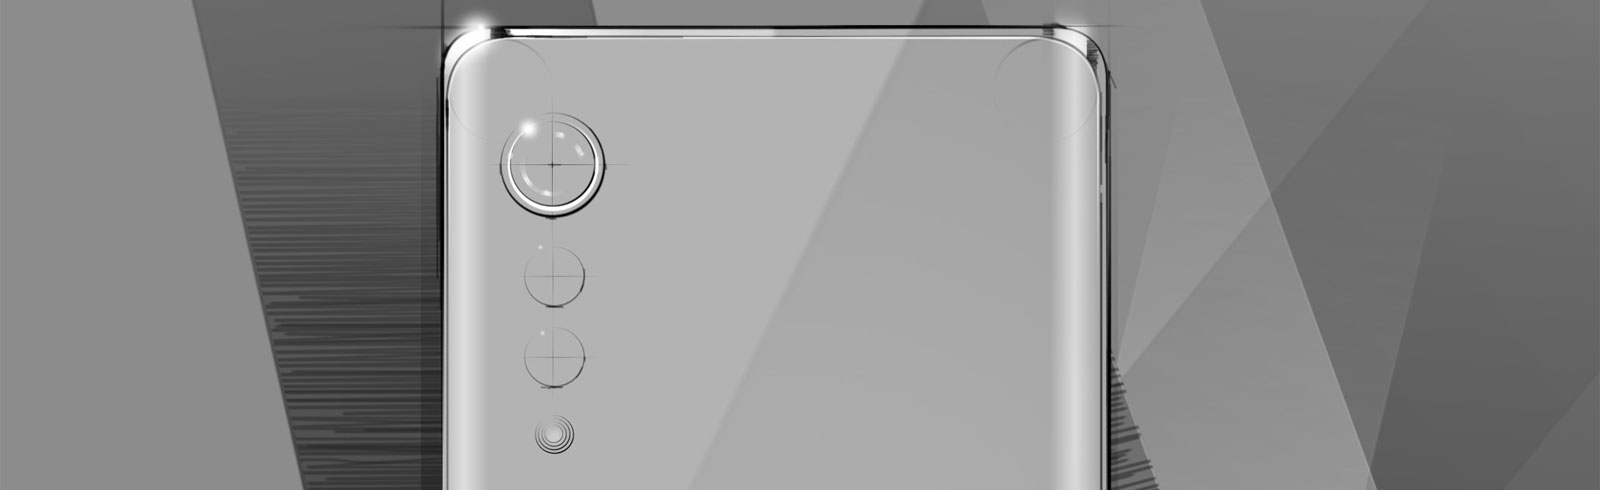 LG teases a new smartphone with 3D Arc Design and raindrop camera design